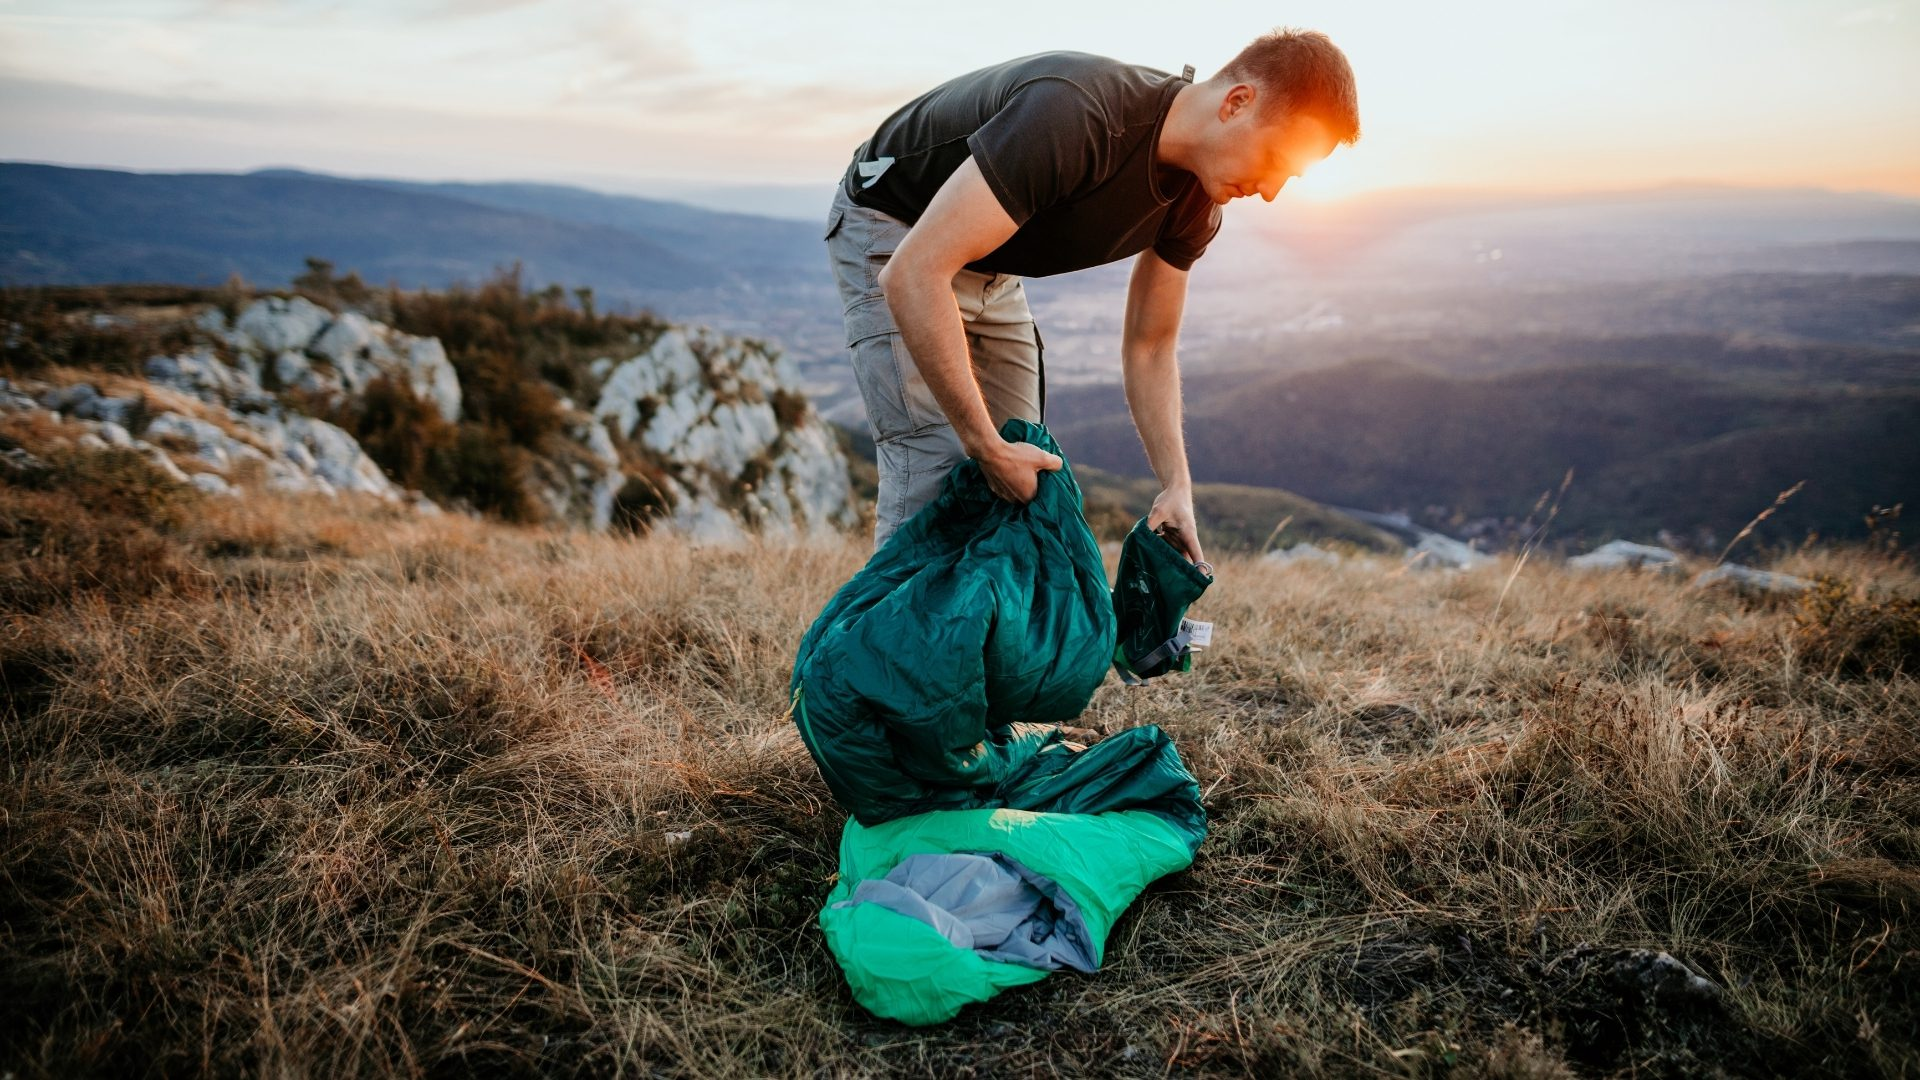 A man packing up a green sleeping bag on a hill side